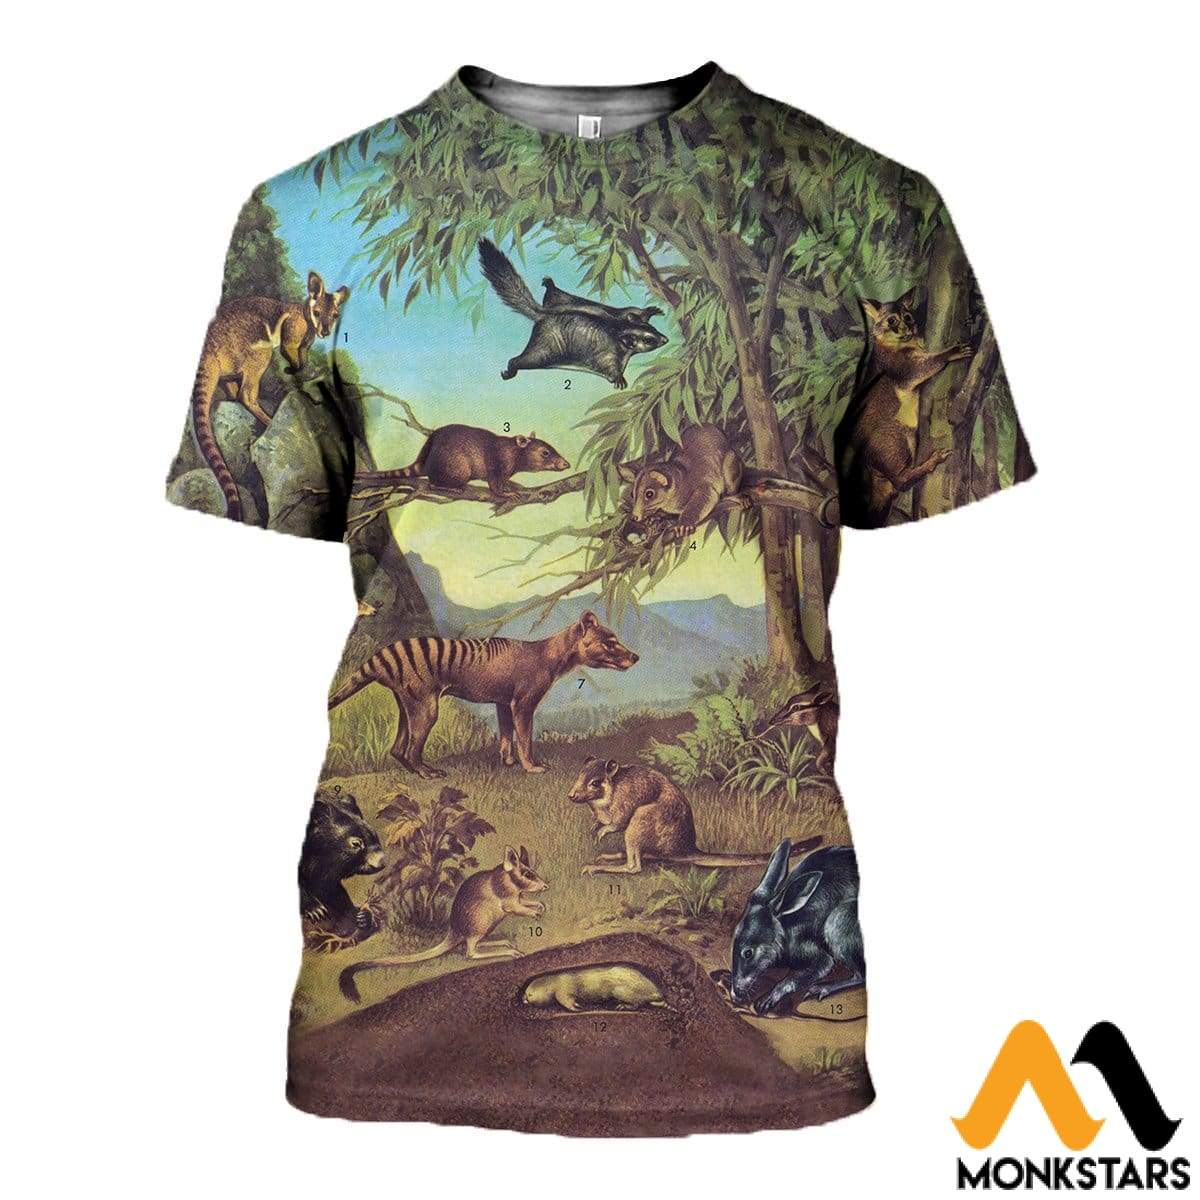 3D All Over Printed Marsupial Animals Shirts And Shorts T-Shirt / Xs Clothes